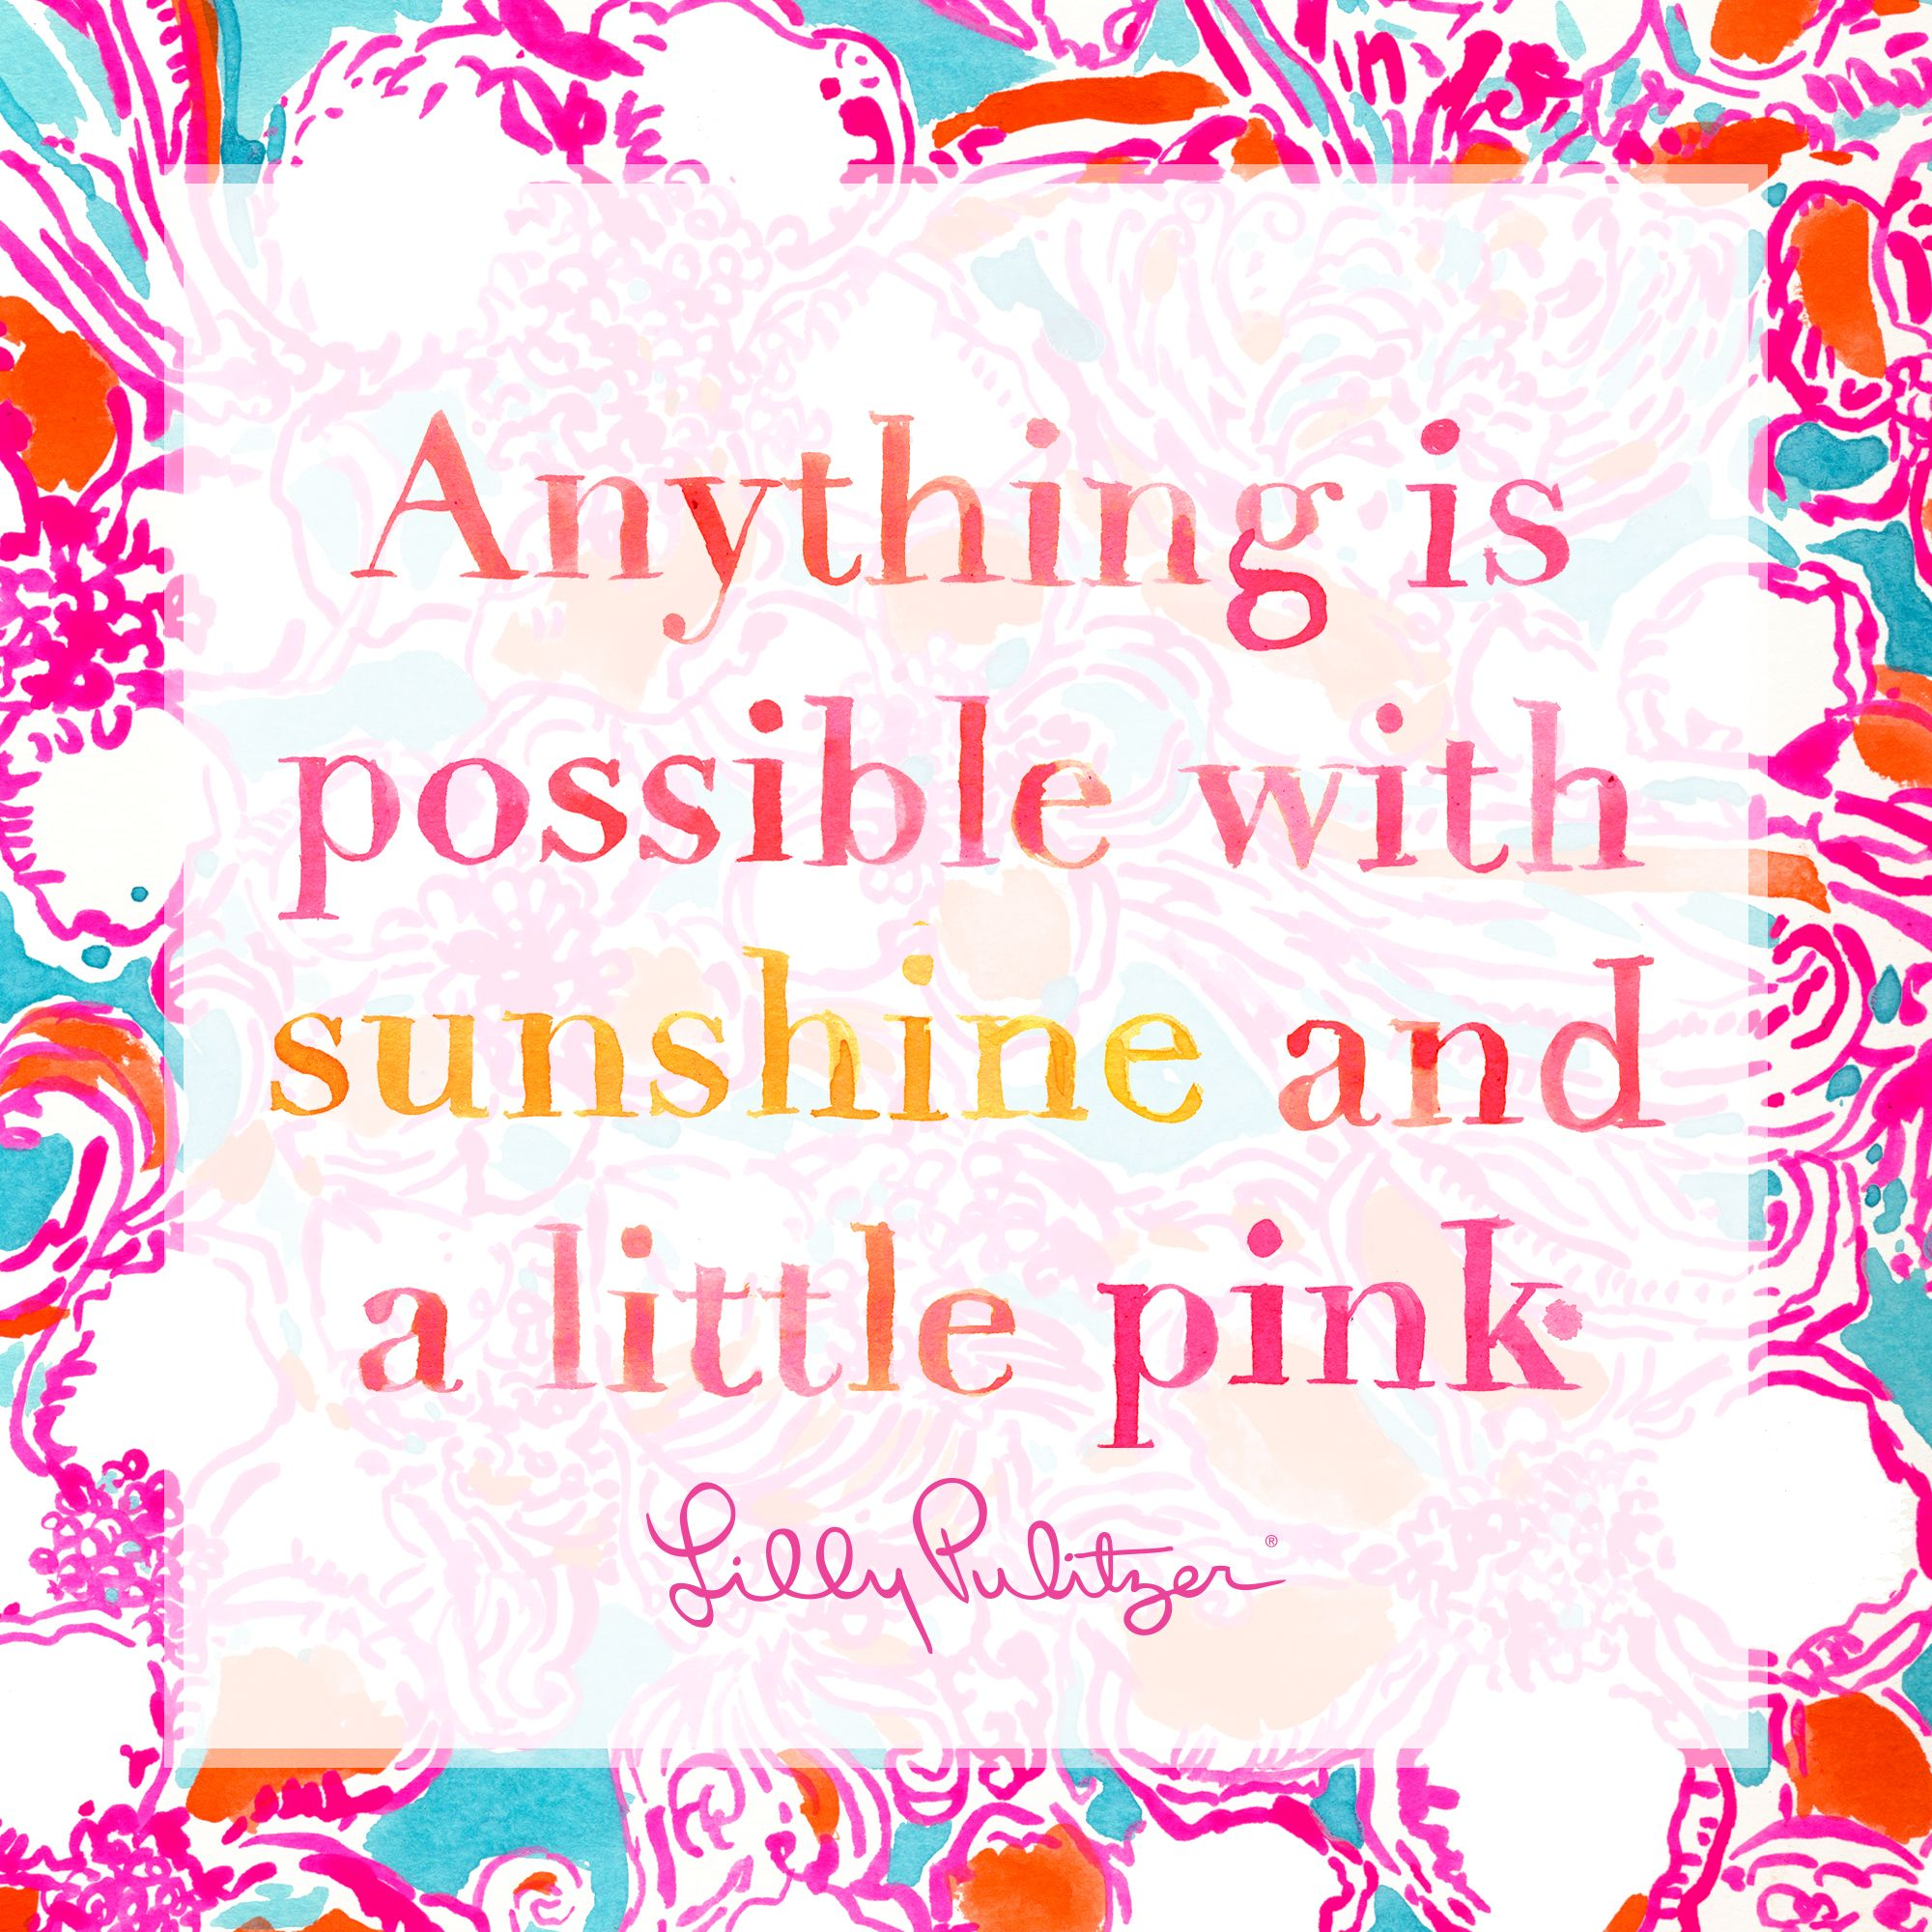 Lilly Pulitzer Quotes 8 Of The Best Lilly Pulitzer Quotes Of All Time  Sunshine Lily .